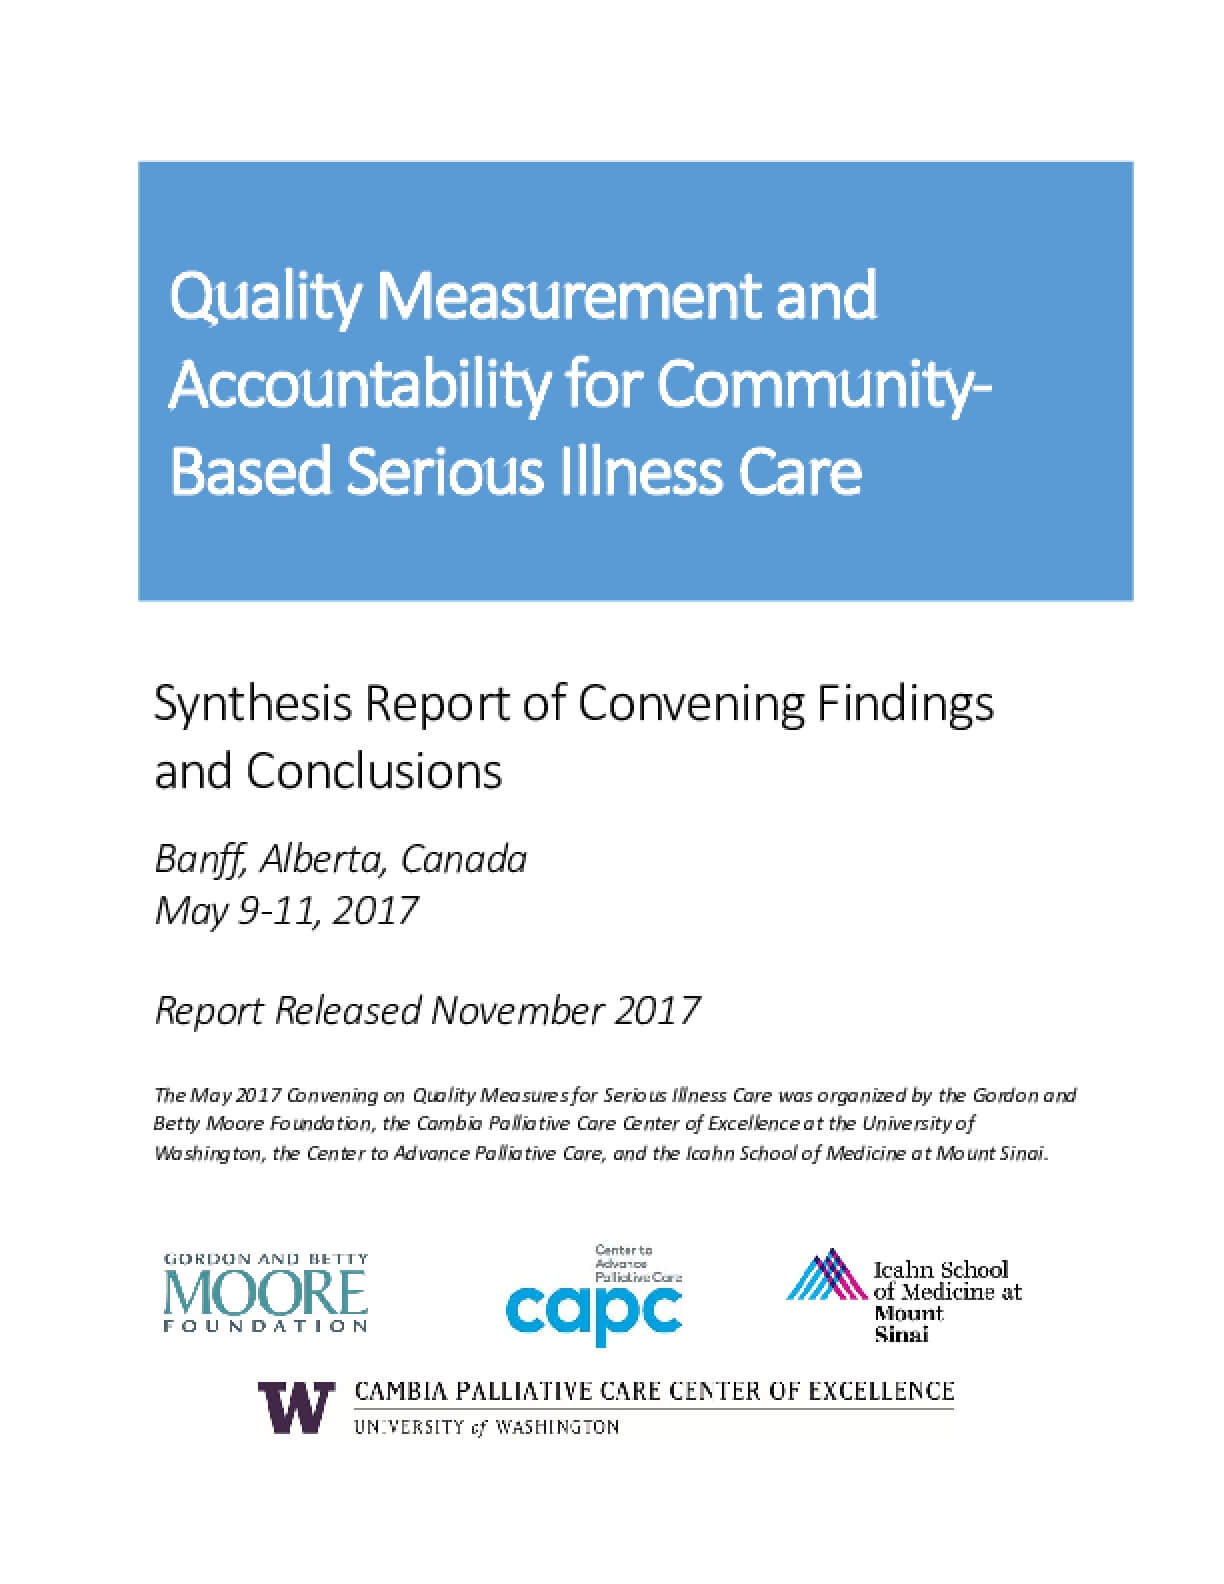 Quality Measurement and Accountability for Community-Based Serious Illness Care: Synthesis Report of Convening Findings and Conclusions